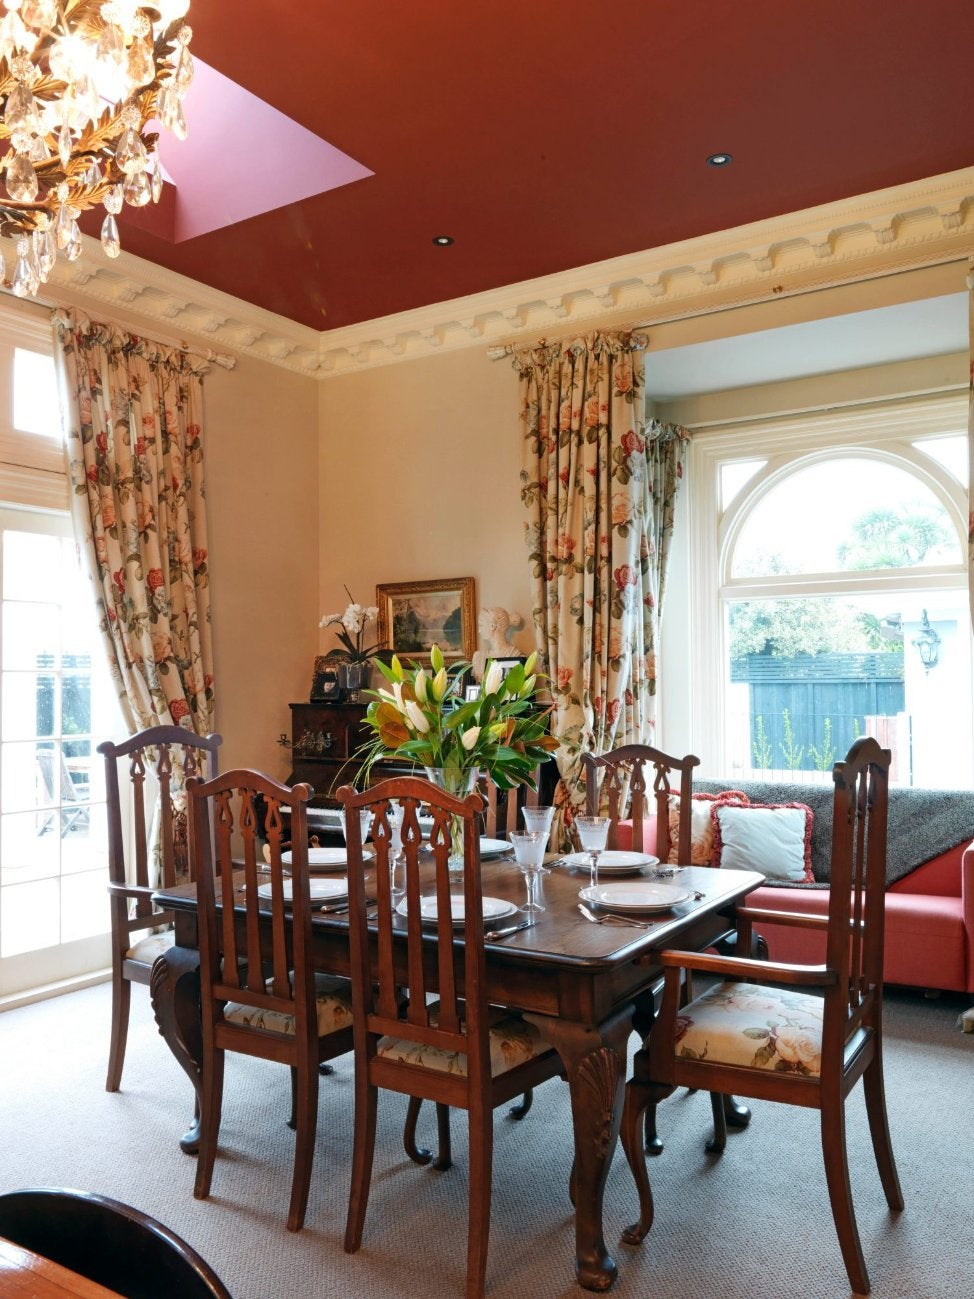 A Formal Dining Room In Christchurch Country Villa The Table Came From An Old Monastery Deep Red Ceiling With Skylight And Glittering